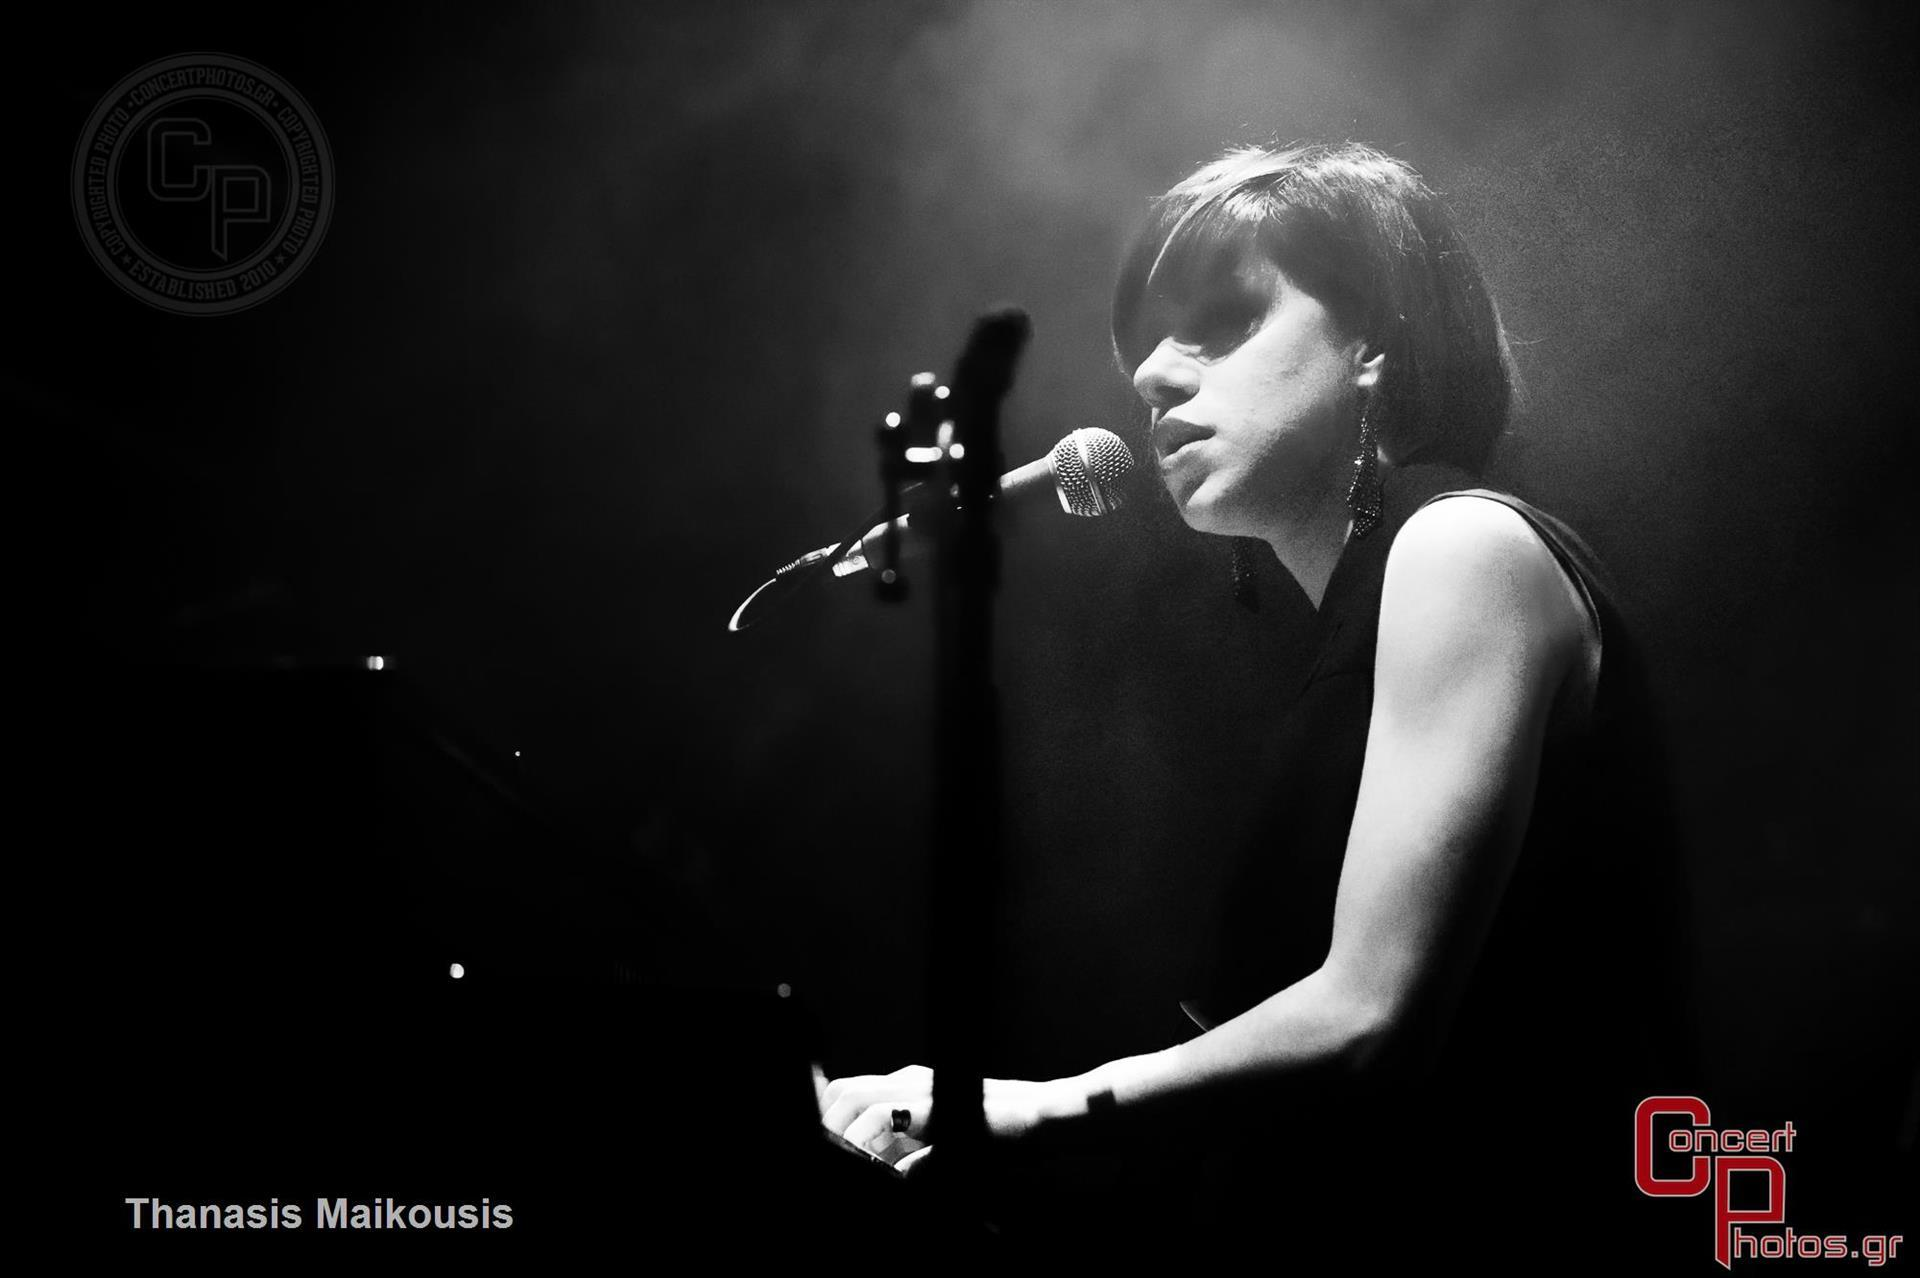 Monika-Monika photographer: Thanasis Maikousis - ConcertPhotos - 20150227_2301_41